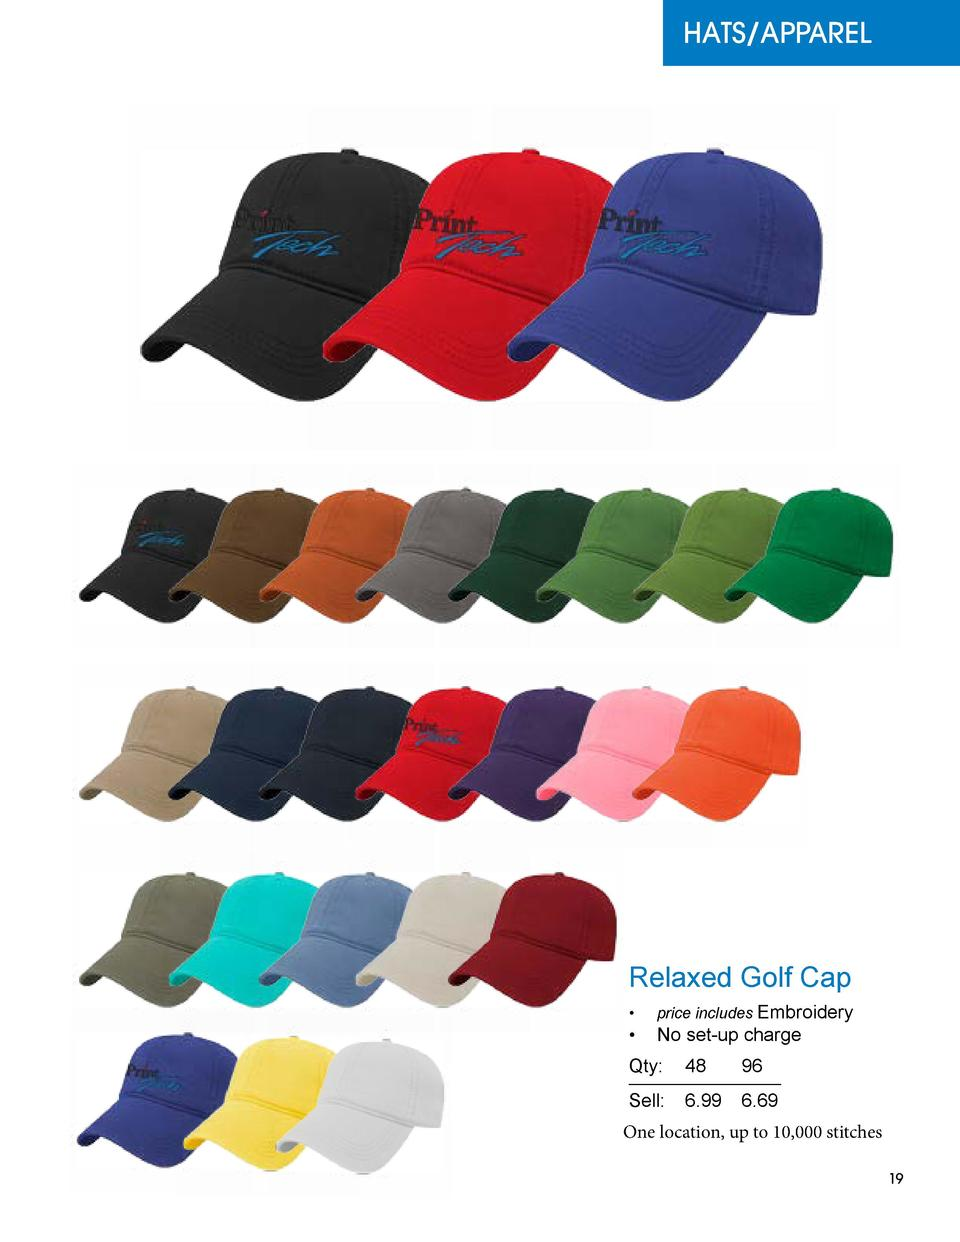 HATS APPAREL  Relaxed Golf Cap      price includes Embroidery      No set-up charge  Qty   48 96 Sell    6.99 6.69 One loc...